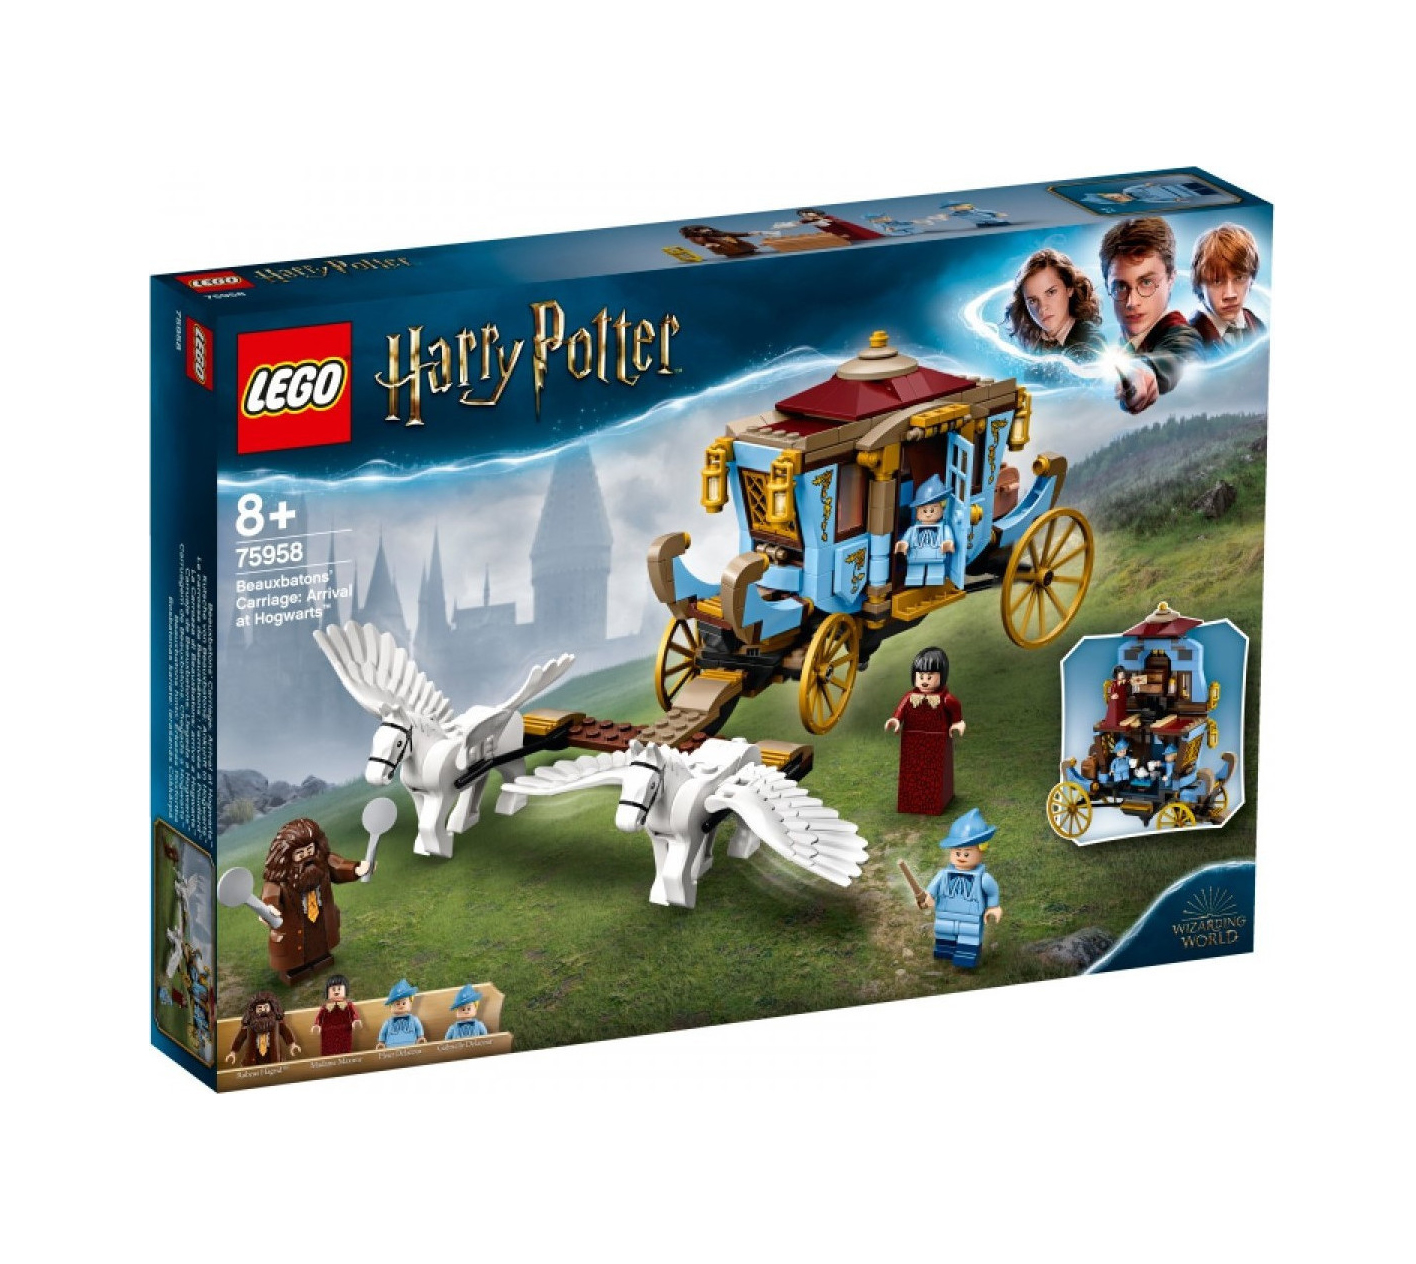 Lego Harry Potter: Beauxbatons' Carriage Arrival at Hogwarts 75958